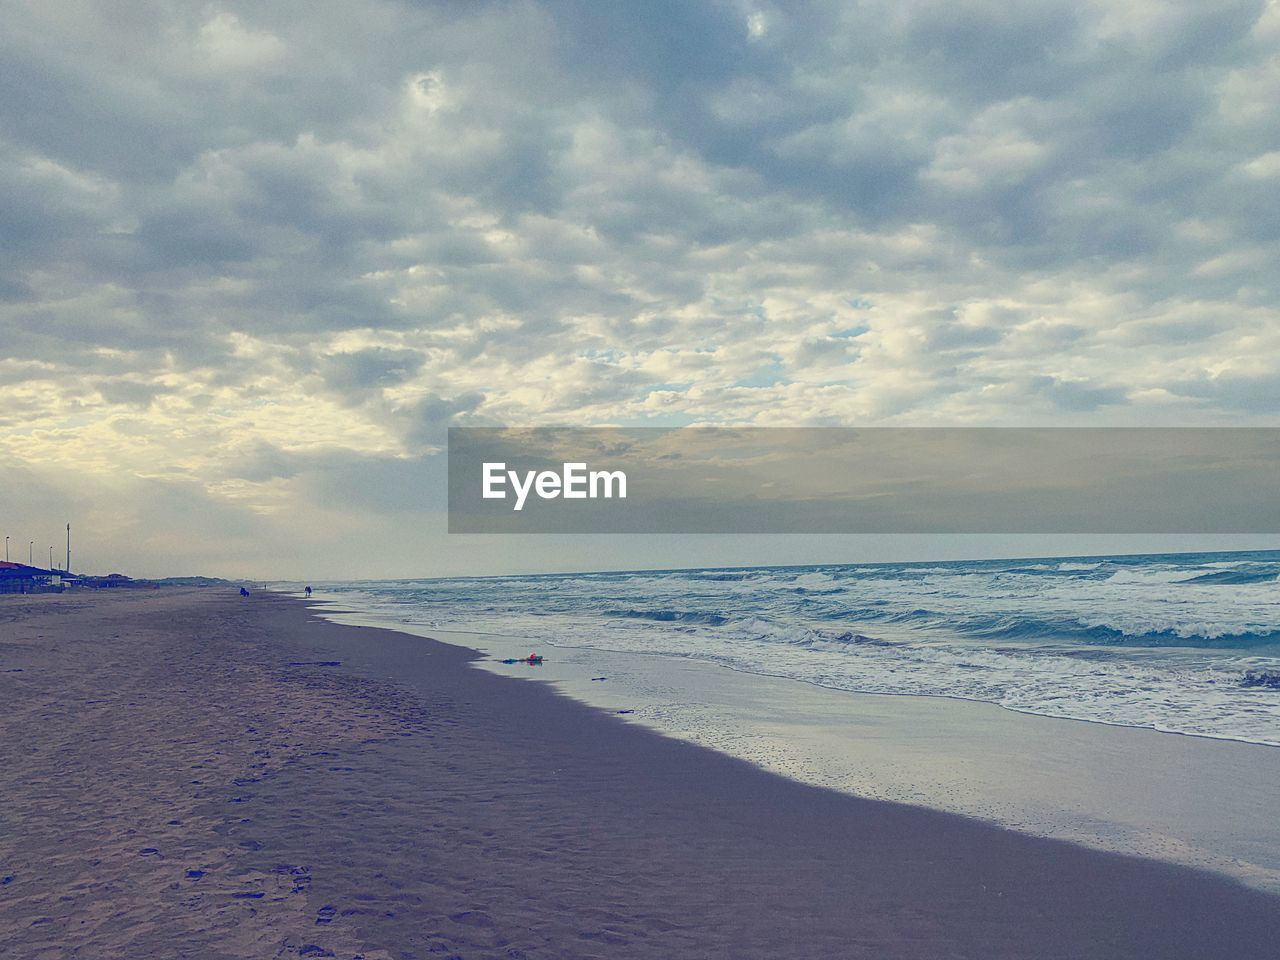 sea, sky, water, cloud - sky, land, scenics - nature, beach, beauty in nature, tranquility, horizon, horizon over water, tranquil scene, sand, nature, no people, outdoors, idyllic, day, non-urban scene